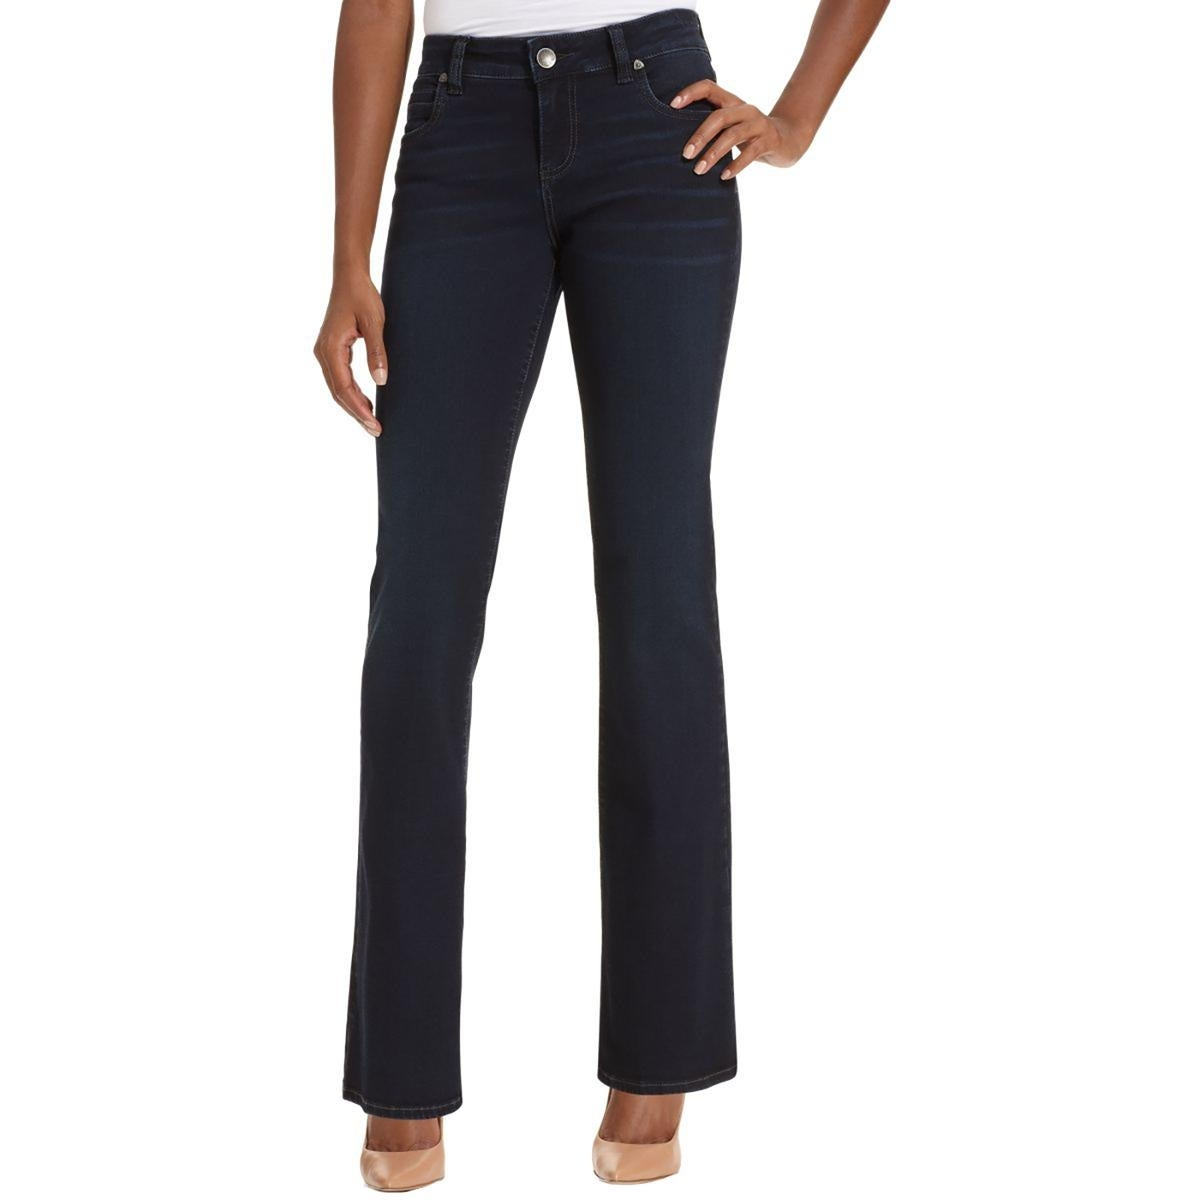 47c75367eb9 Shop Kut From The Kloth Womens Natalie Bootcut Jeans Denim Bakes ...